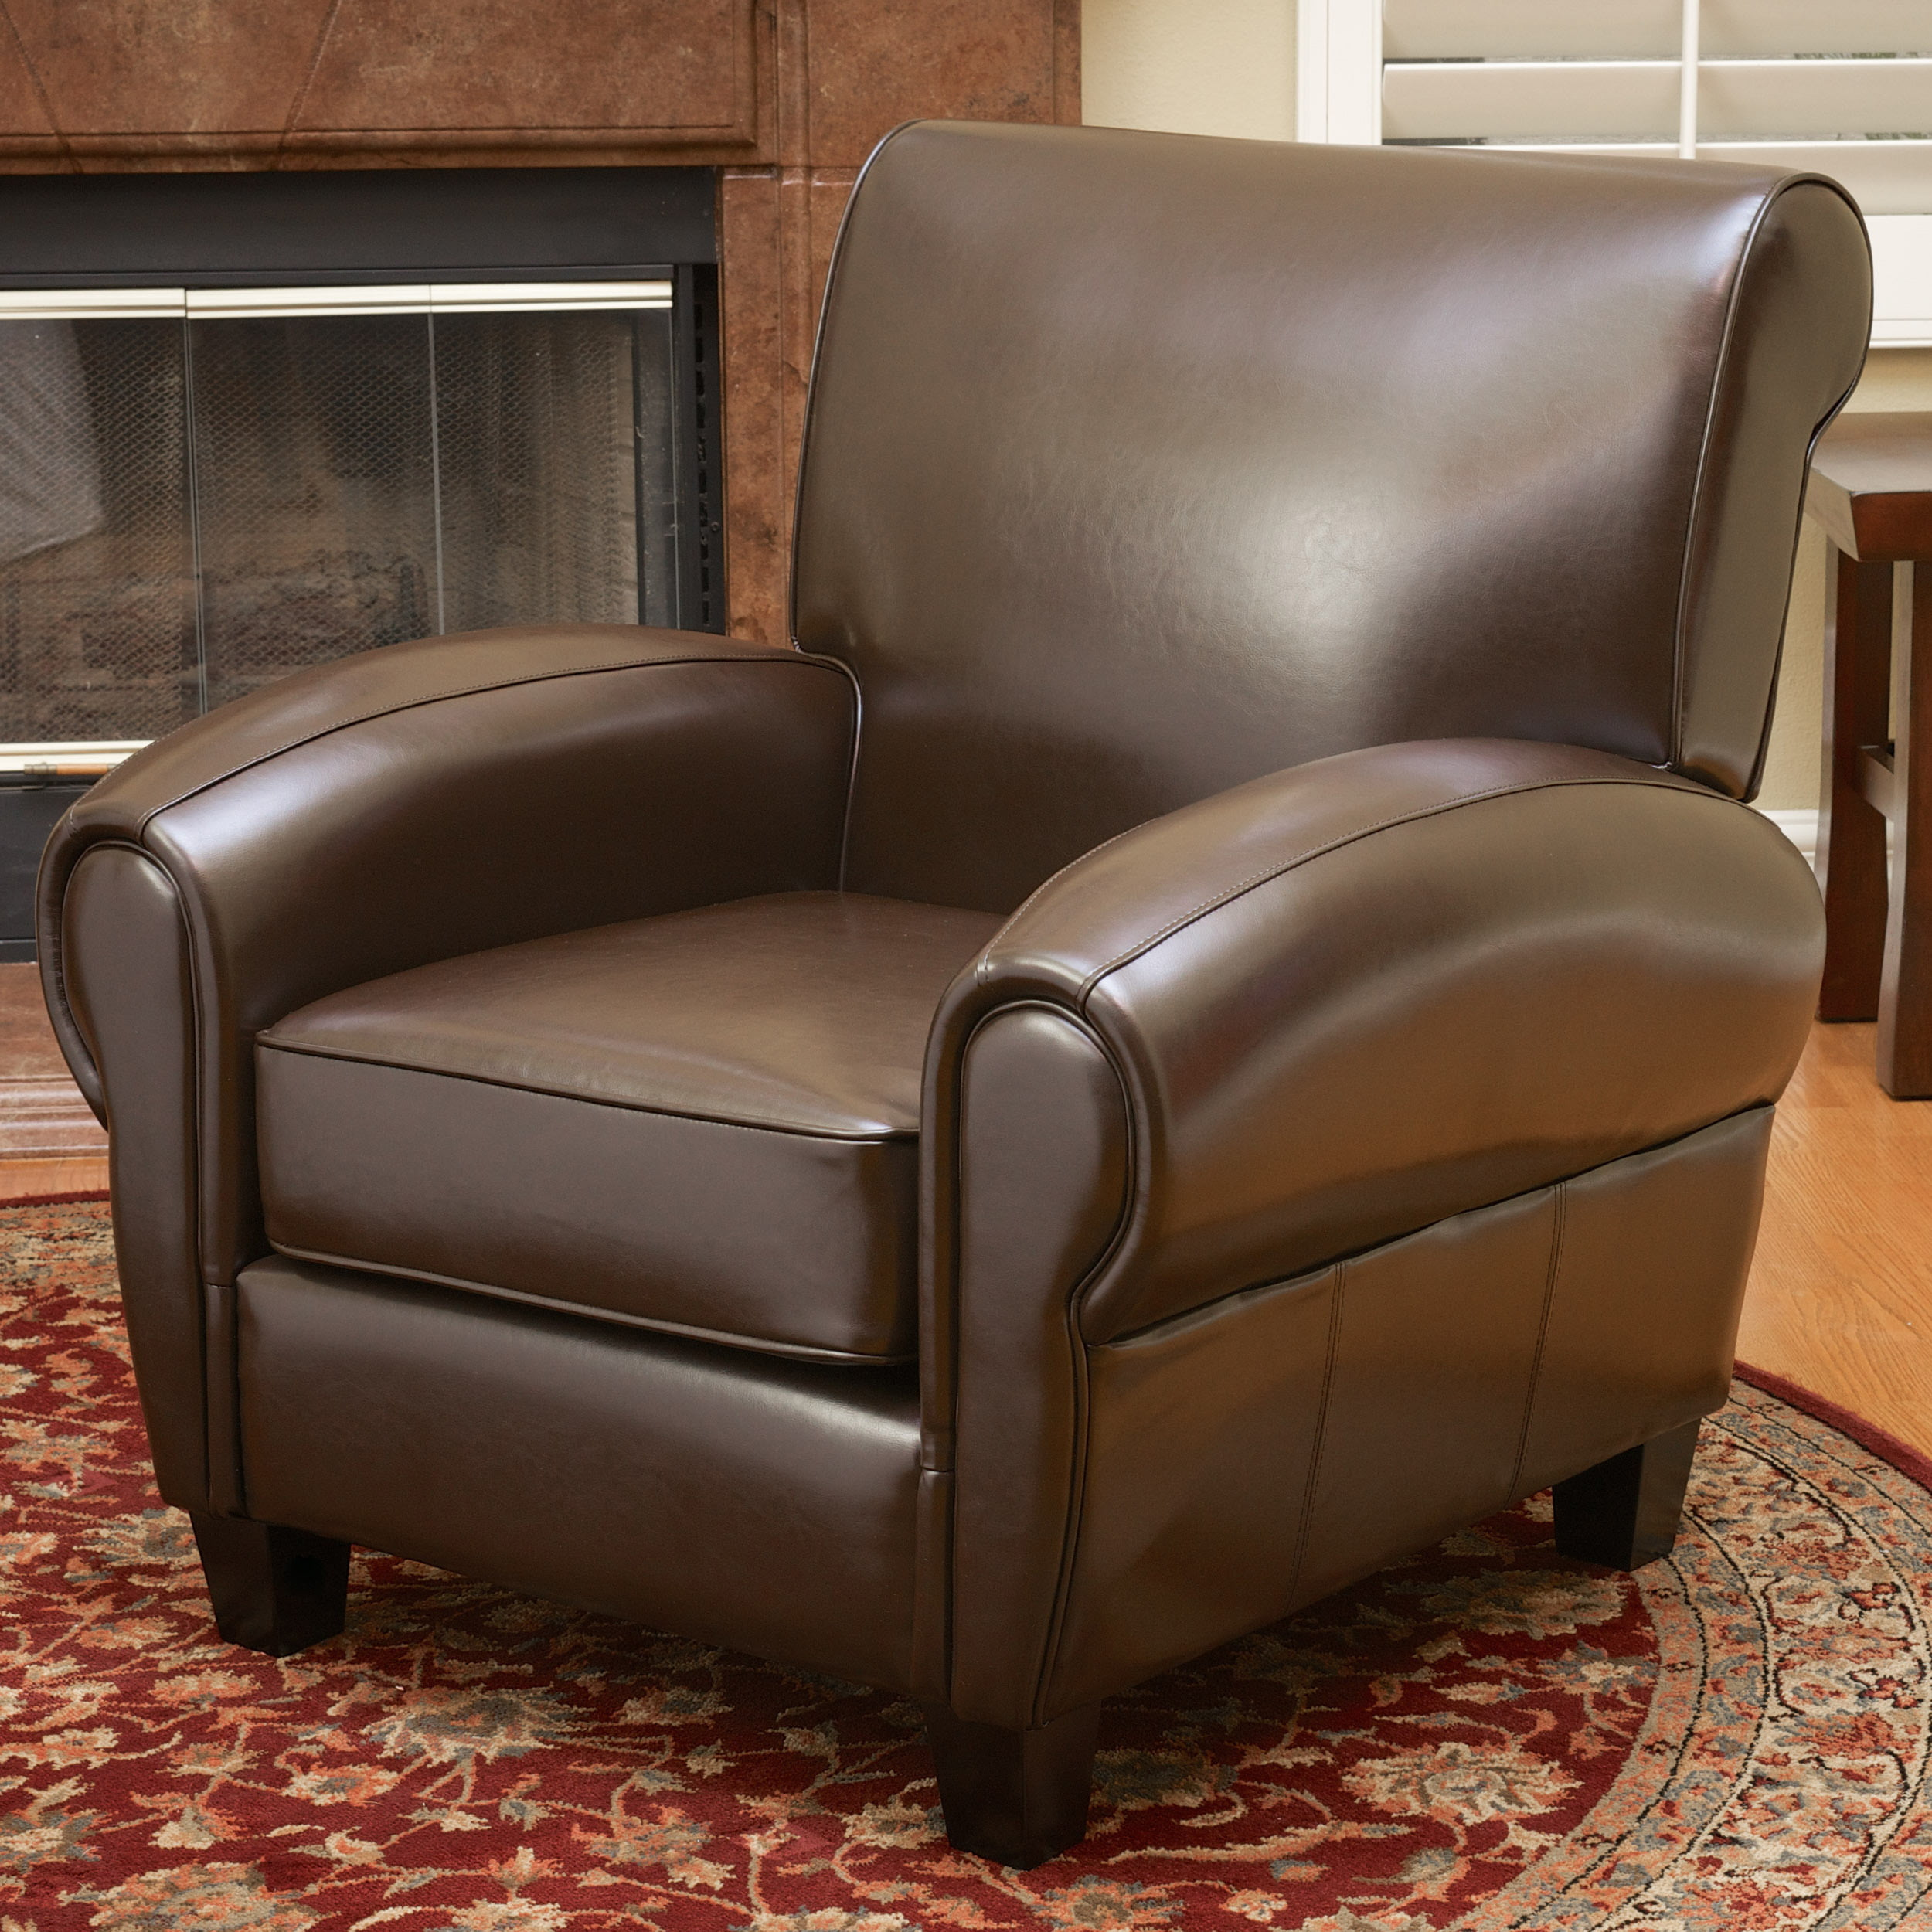 Thatcher Brown Bonded Leather Club Chair by GDF Studio